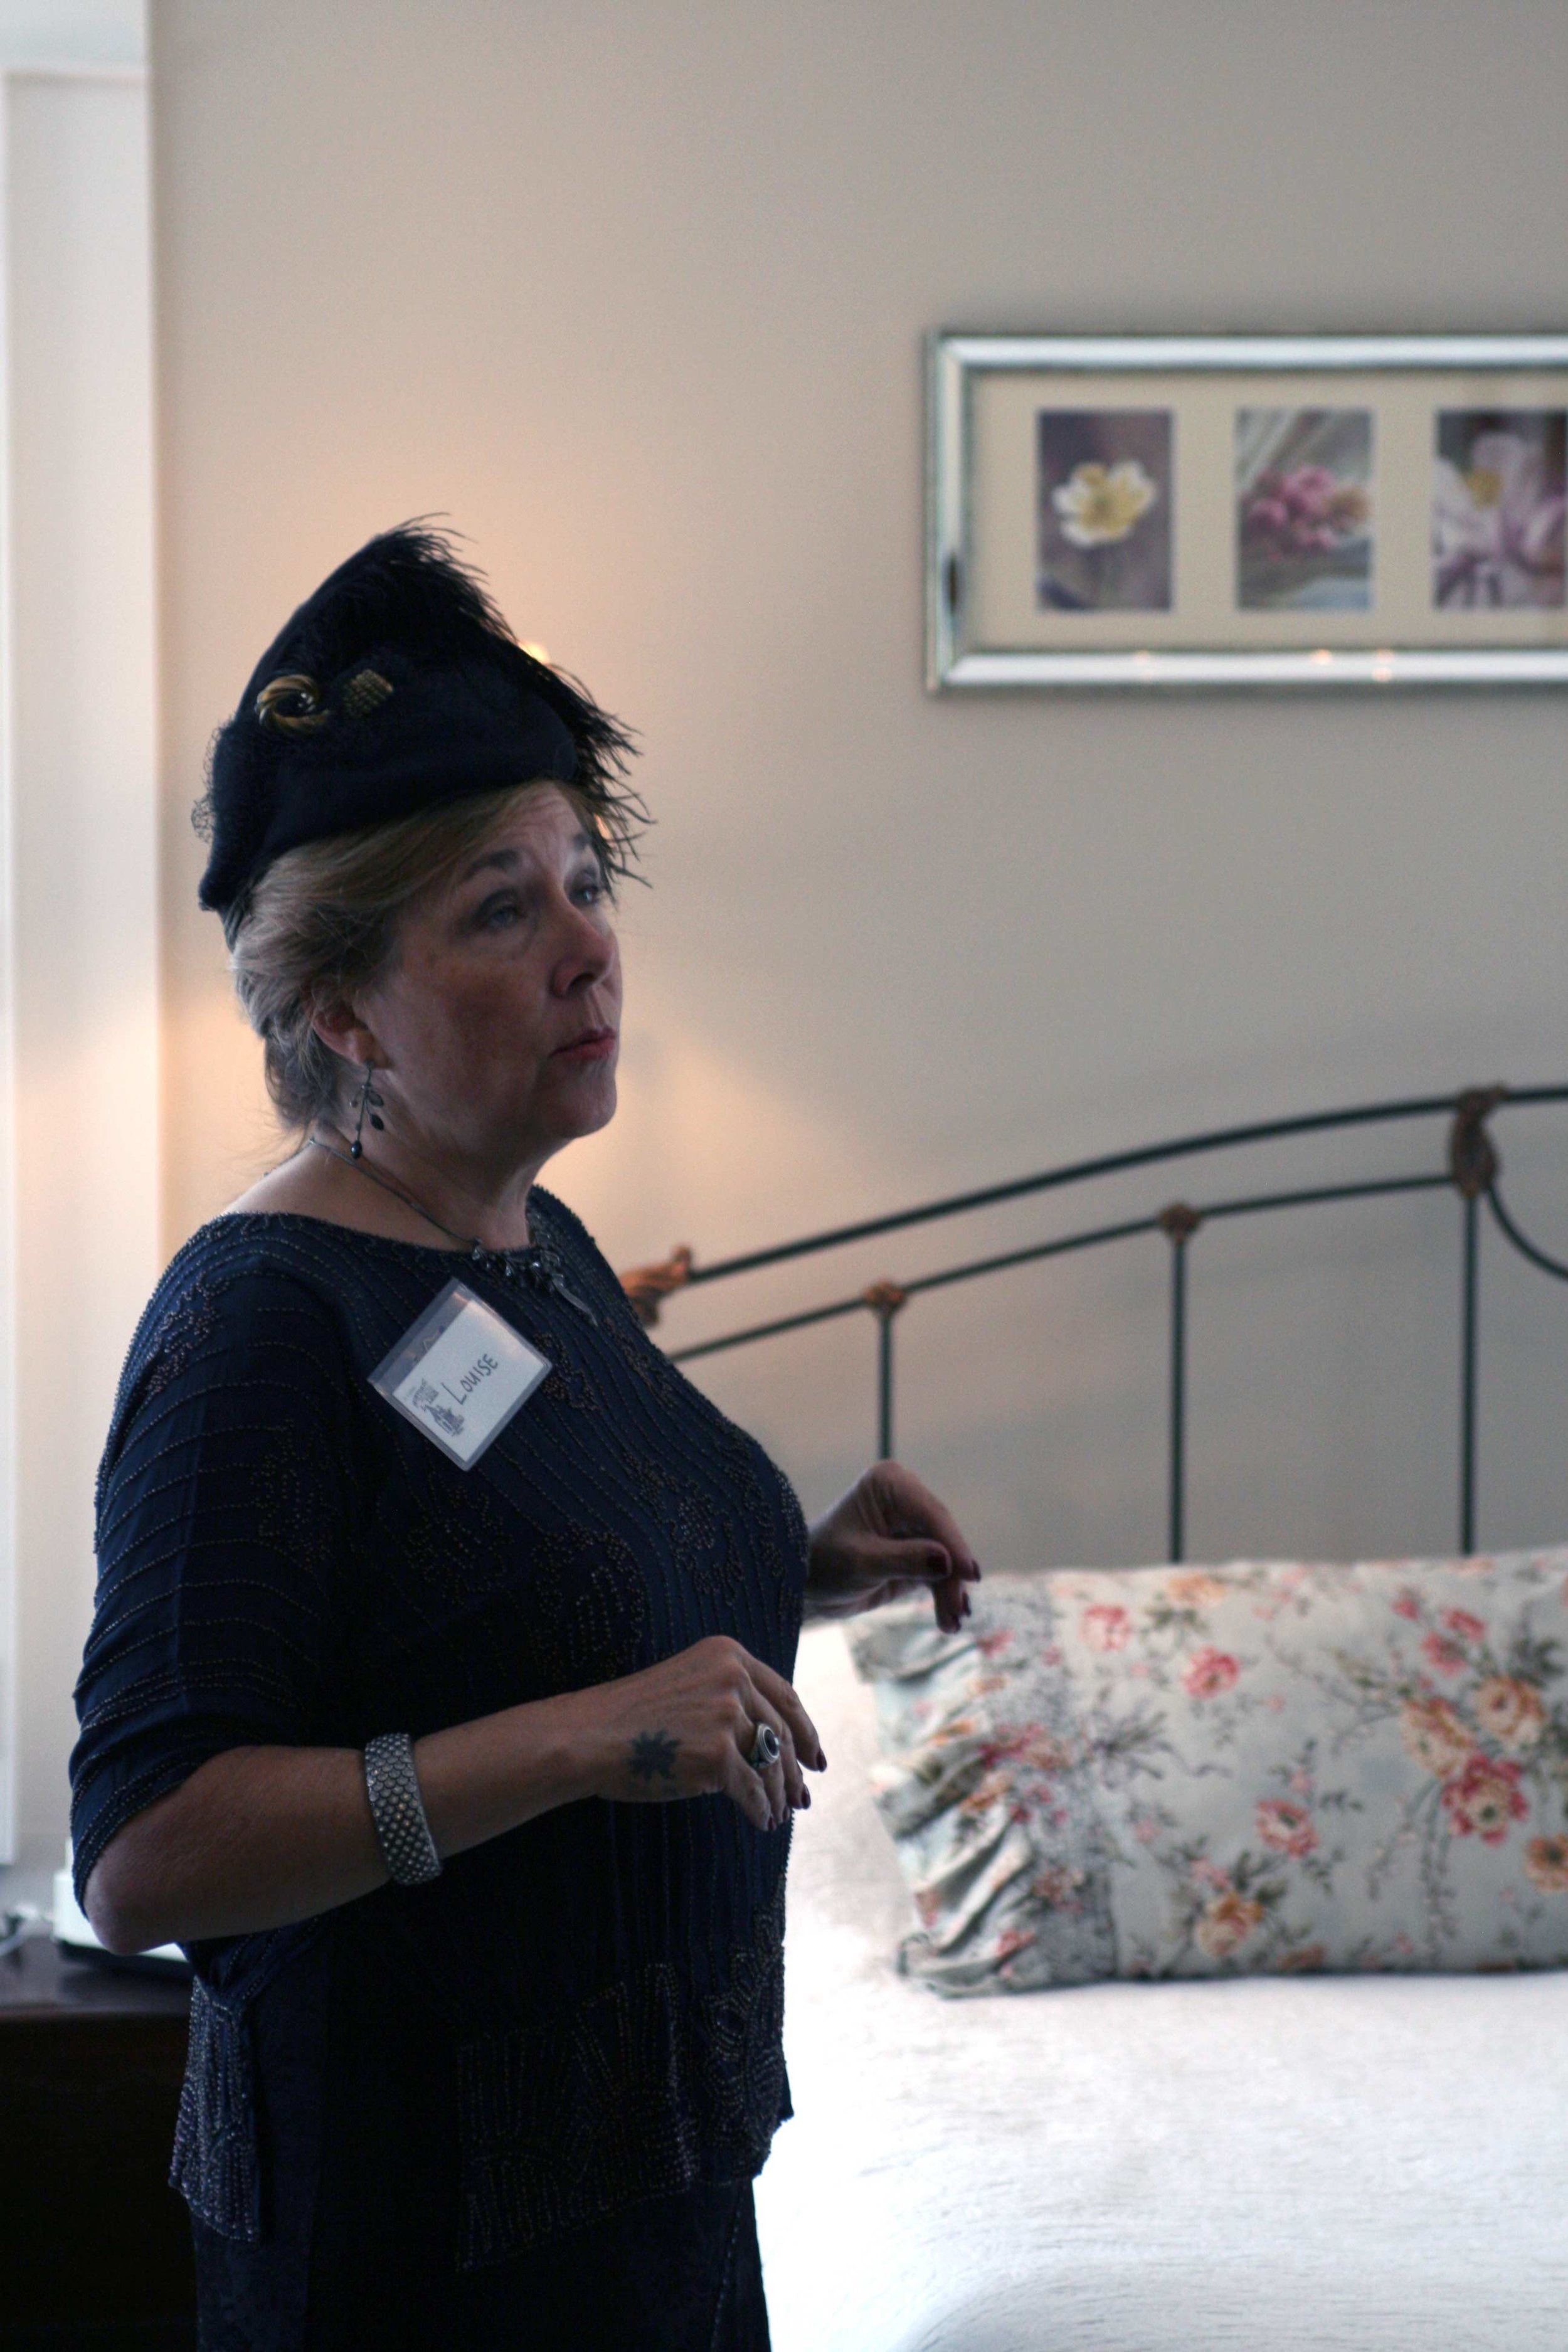 The tour is made possible by volunteer docents who guide guests through the historic homes and inform them about the history & remodel of each room